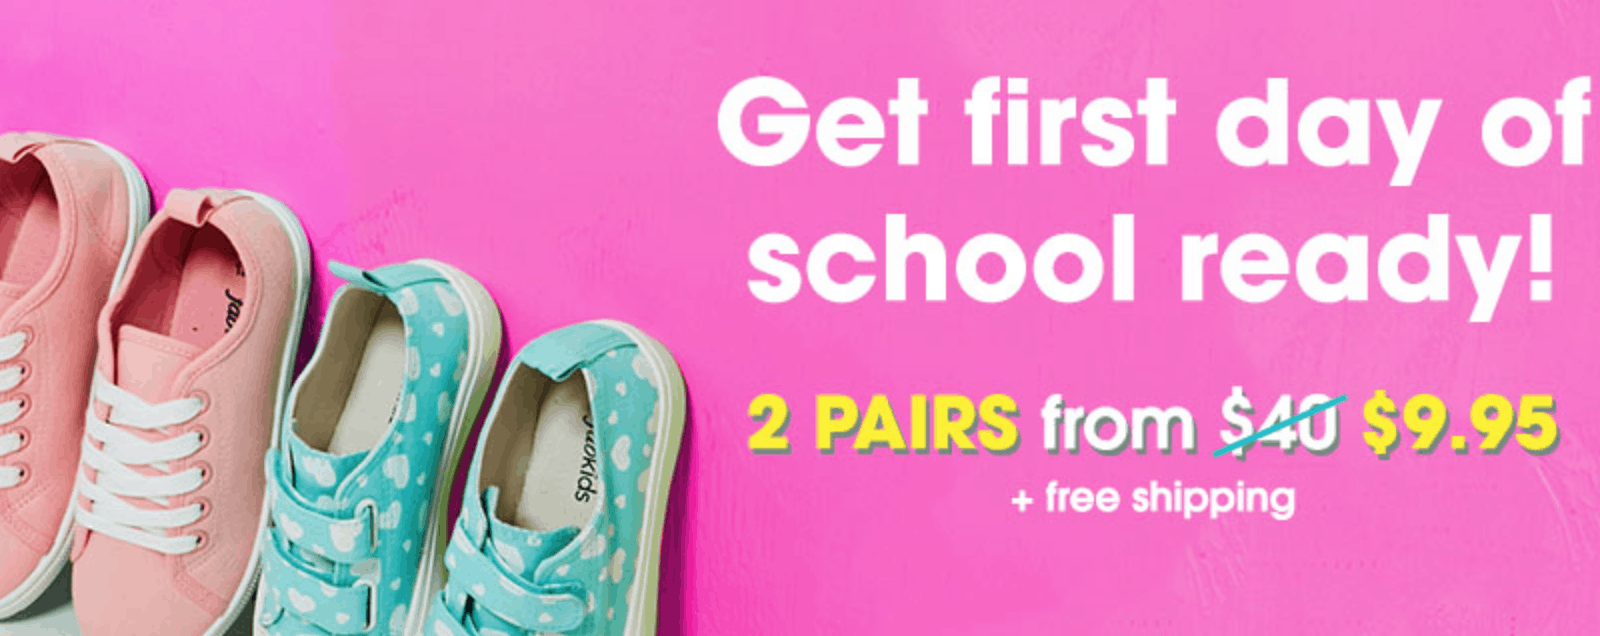 Fabkids shoe deal